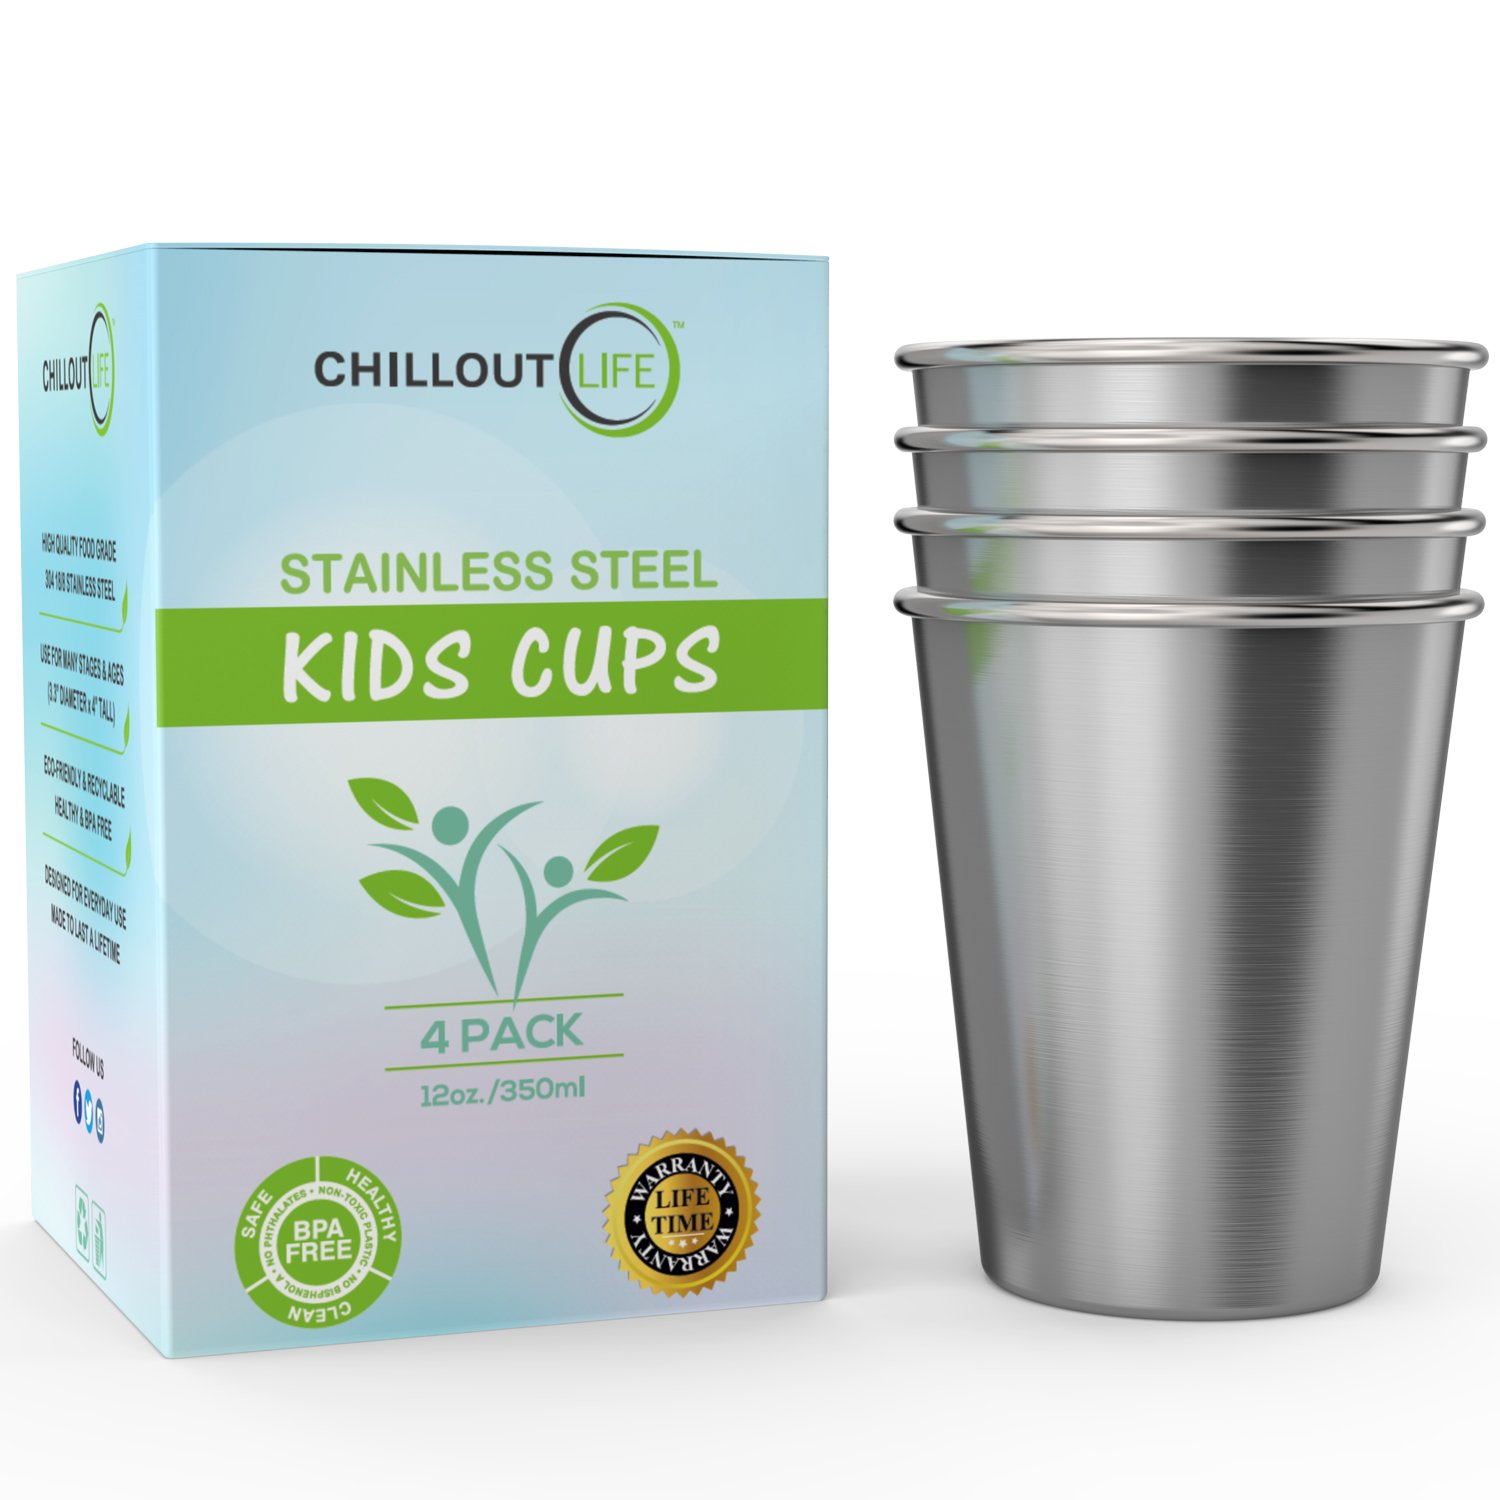 Stainless Steel Cups for Kids and Adult 12 oz – Metal Kids Cups stackable for Home & Outdoor Activities, BPA Free Healthy Unbreakable Premium Metal Drinking Pint Glasses (4-Pack) by CHILLOUT LIFE